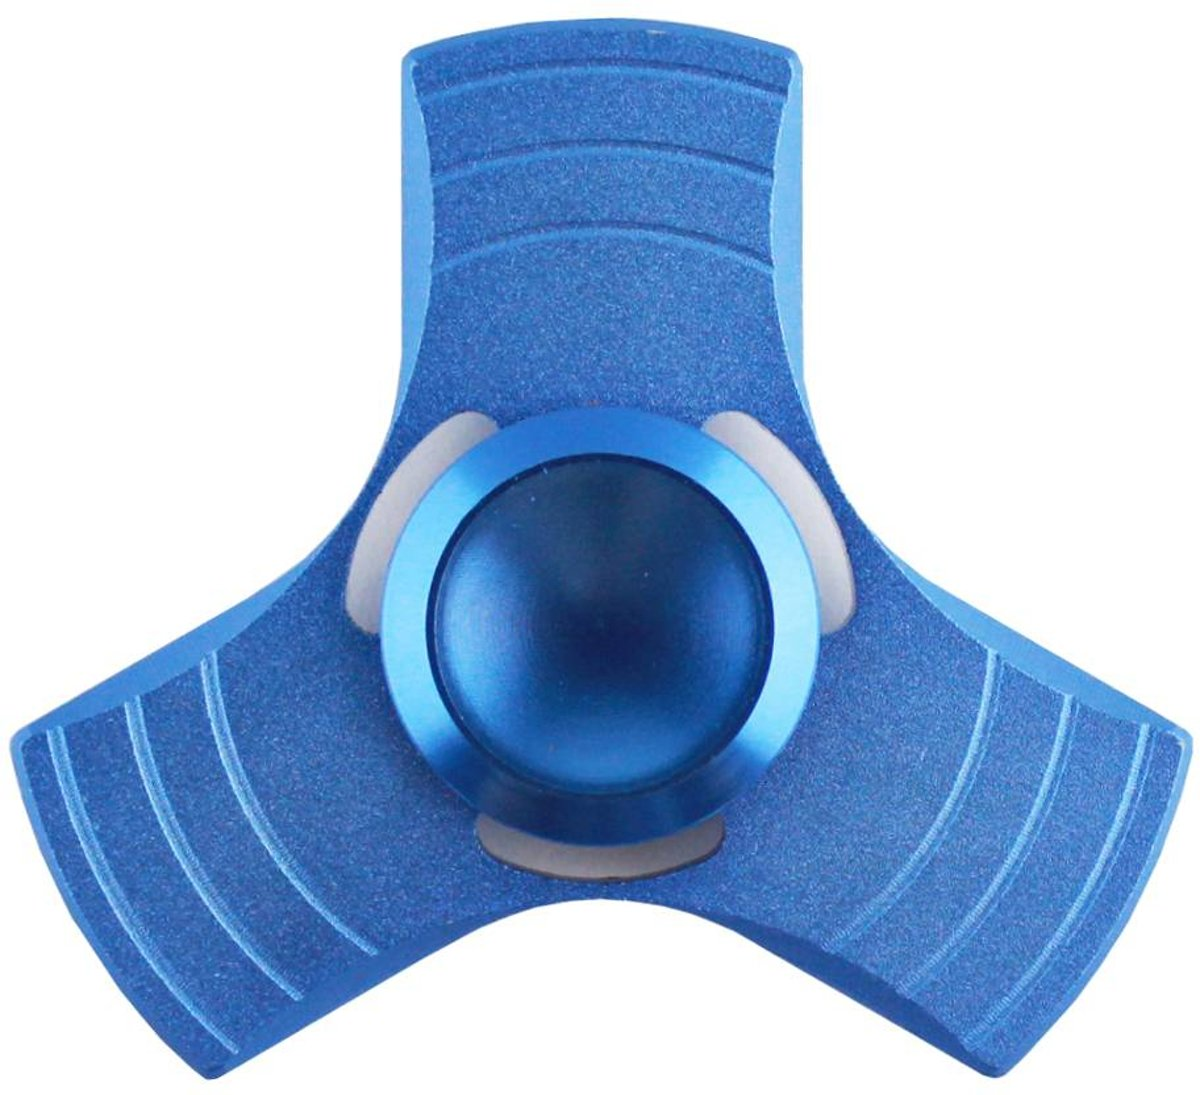 Hand Spinner / Metal look / Aluminium / Tri Spinner / Anti-Stress / Concentratie verhogend in Blauw